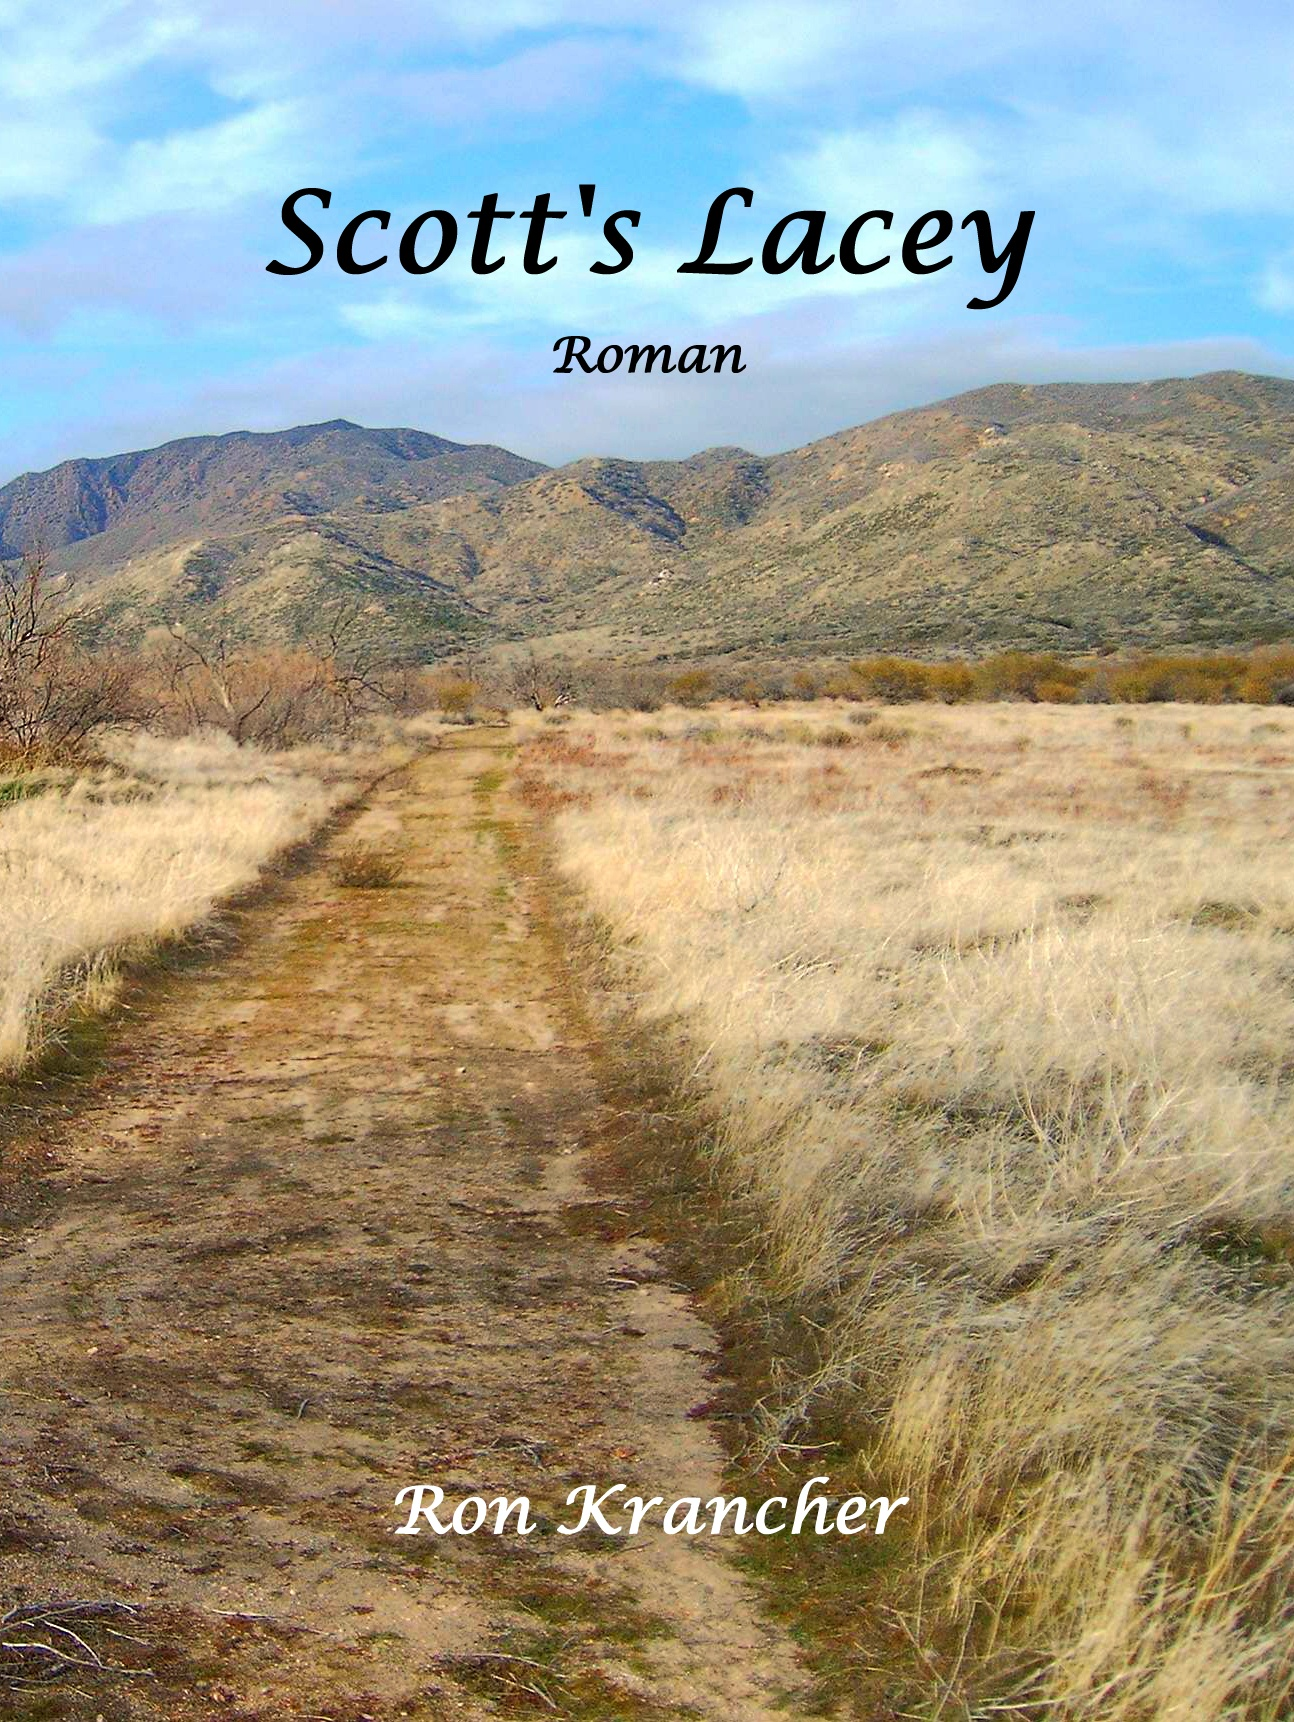 Scott's Lacey